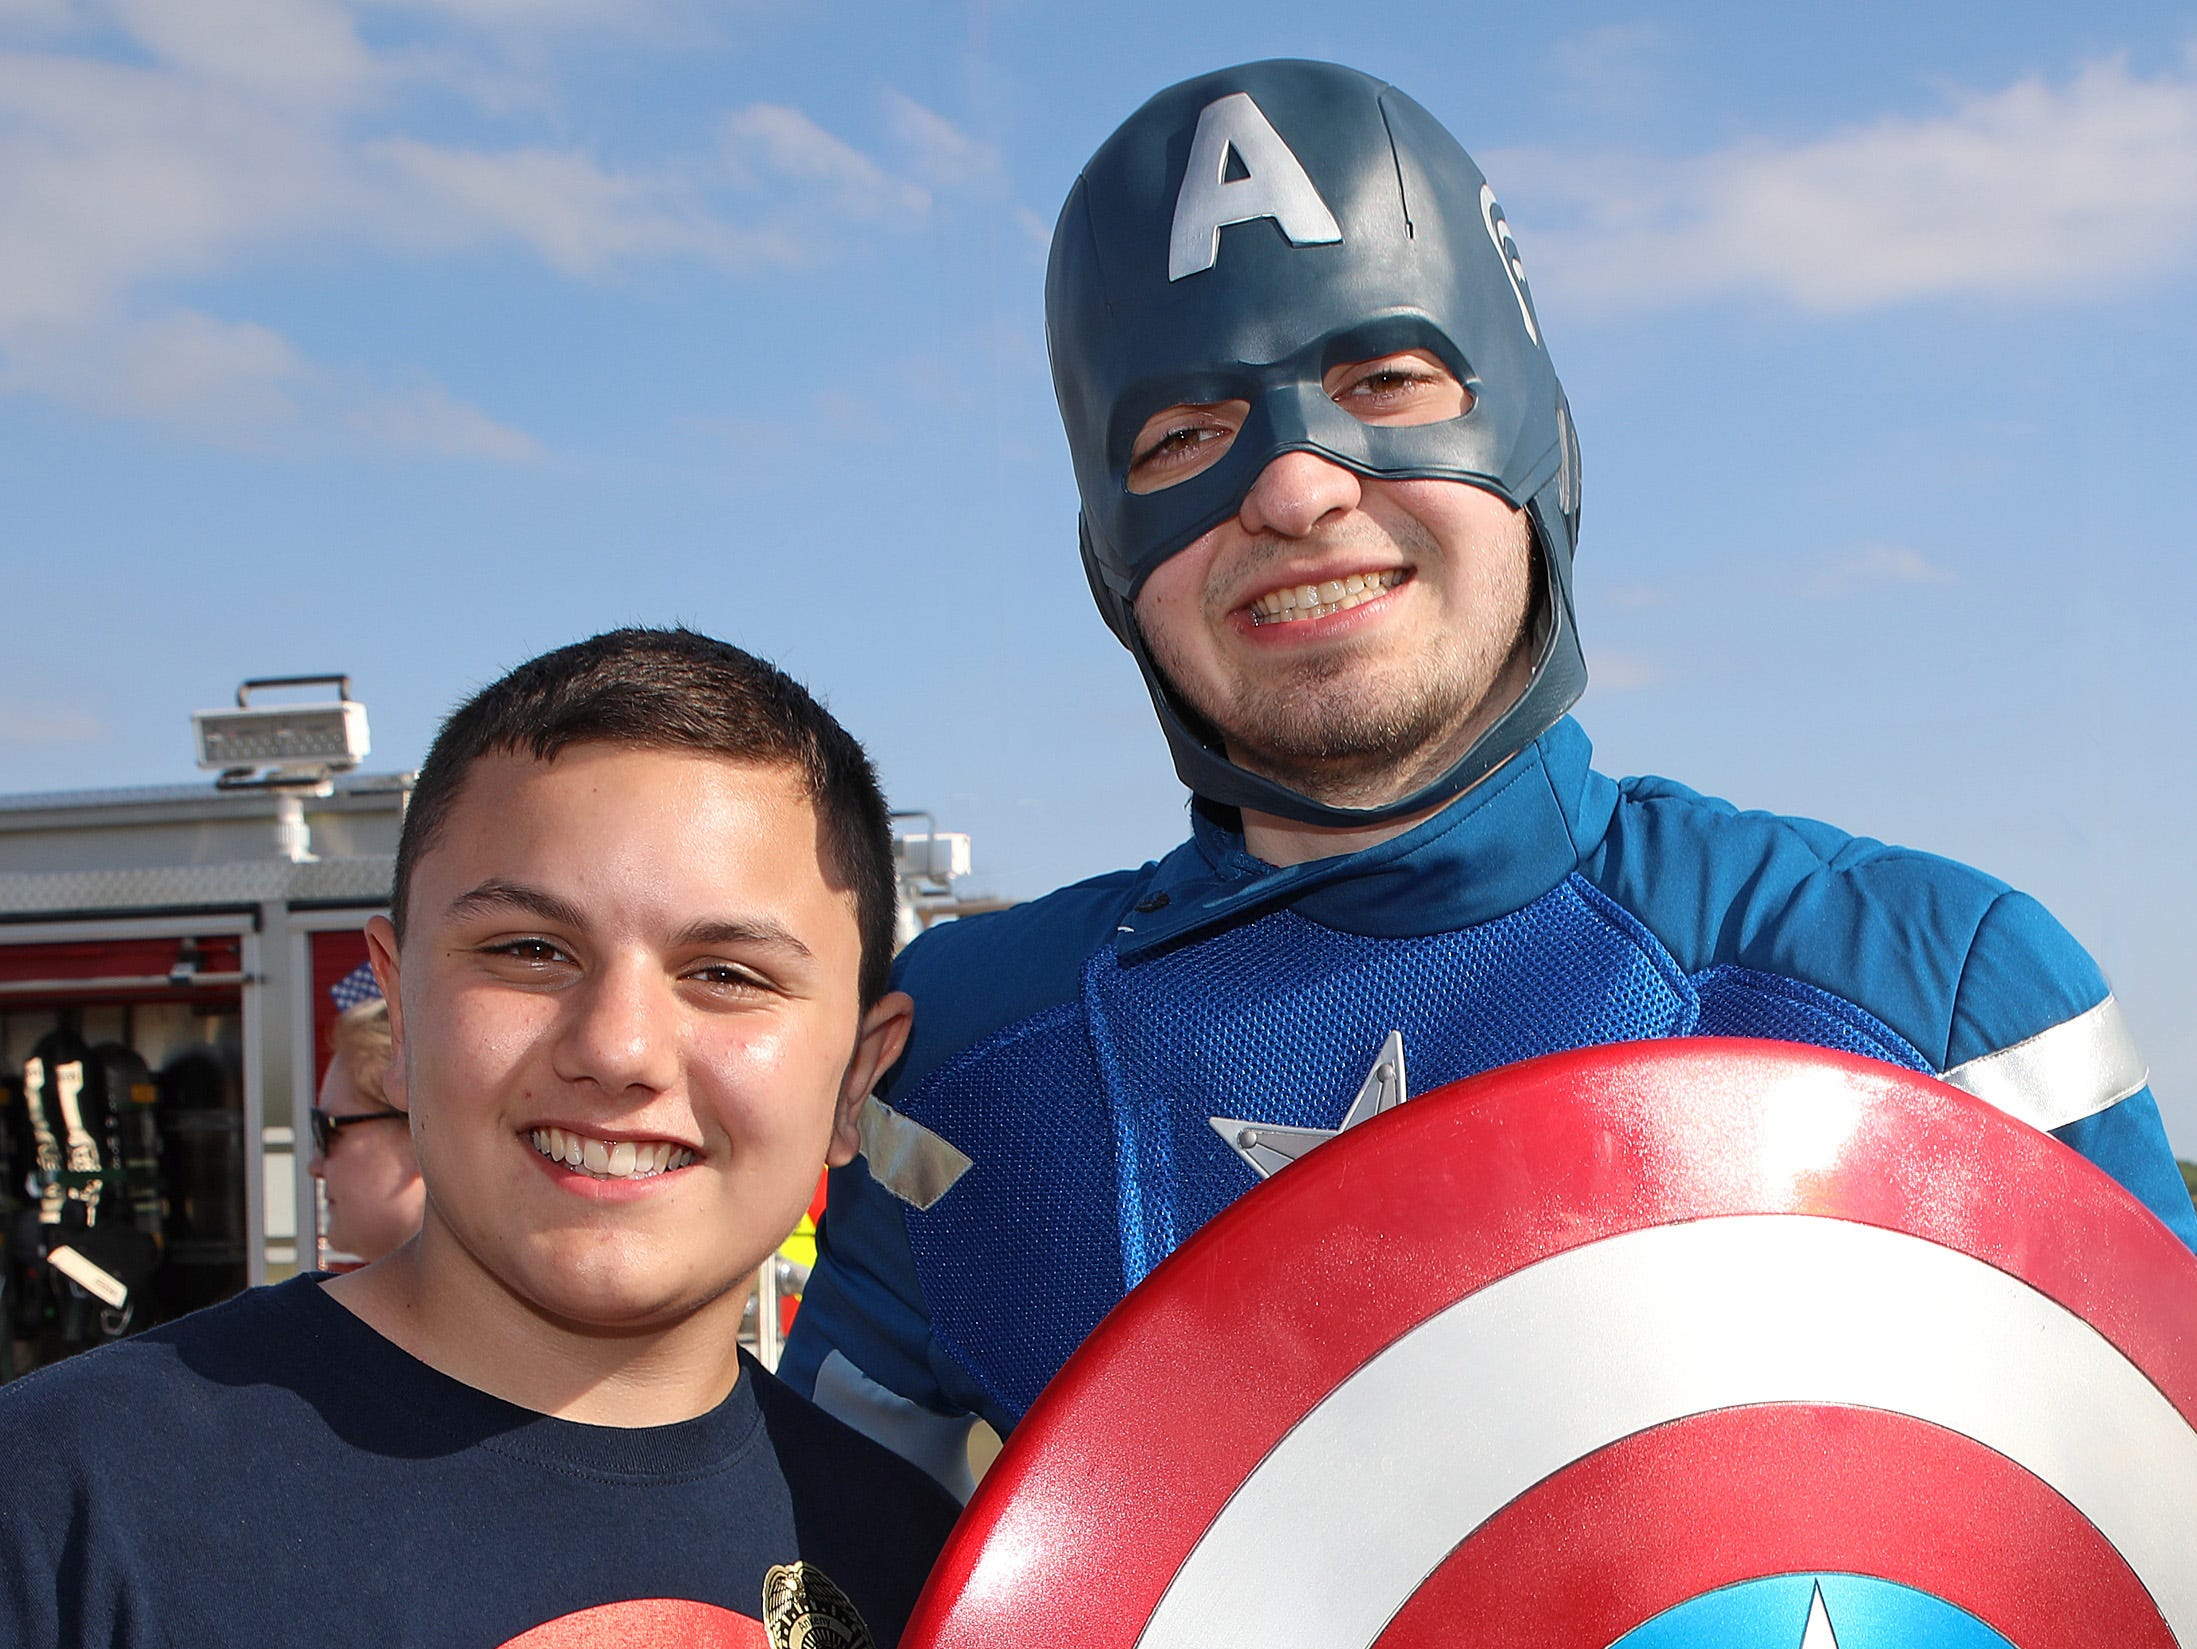 Captain America meets one of his fans, Henry Dyer, 13, of Ankeny at the Ankeny Police Week Community Picnic on Tuesday, May 14, 2019 at the Ankeny Police Headquarters located at 411 SW Ordnance Road. The event featured a tour of the police station, magician Jonathon May, free Chick Fil-A sandwiches for the first 1,000 guests, free Kona Ice, temporary tattoos, and a great opportunity to meet the officers who protect and serve the city of Ankeny.